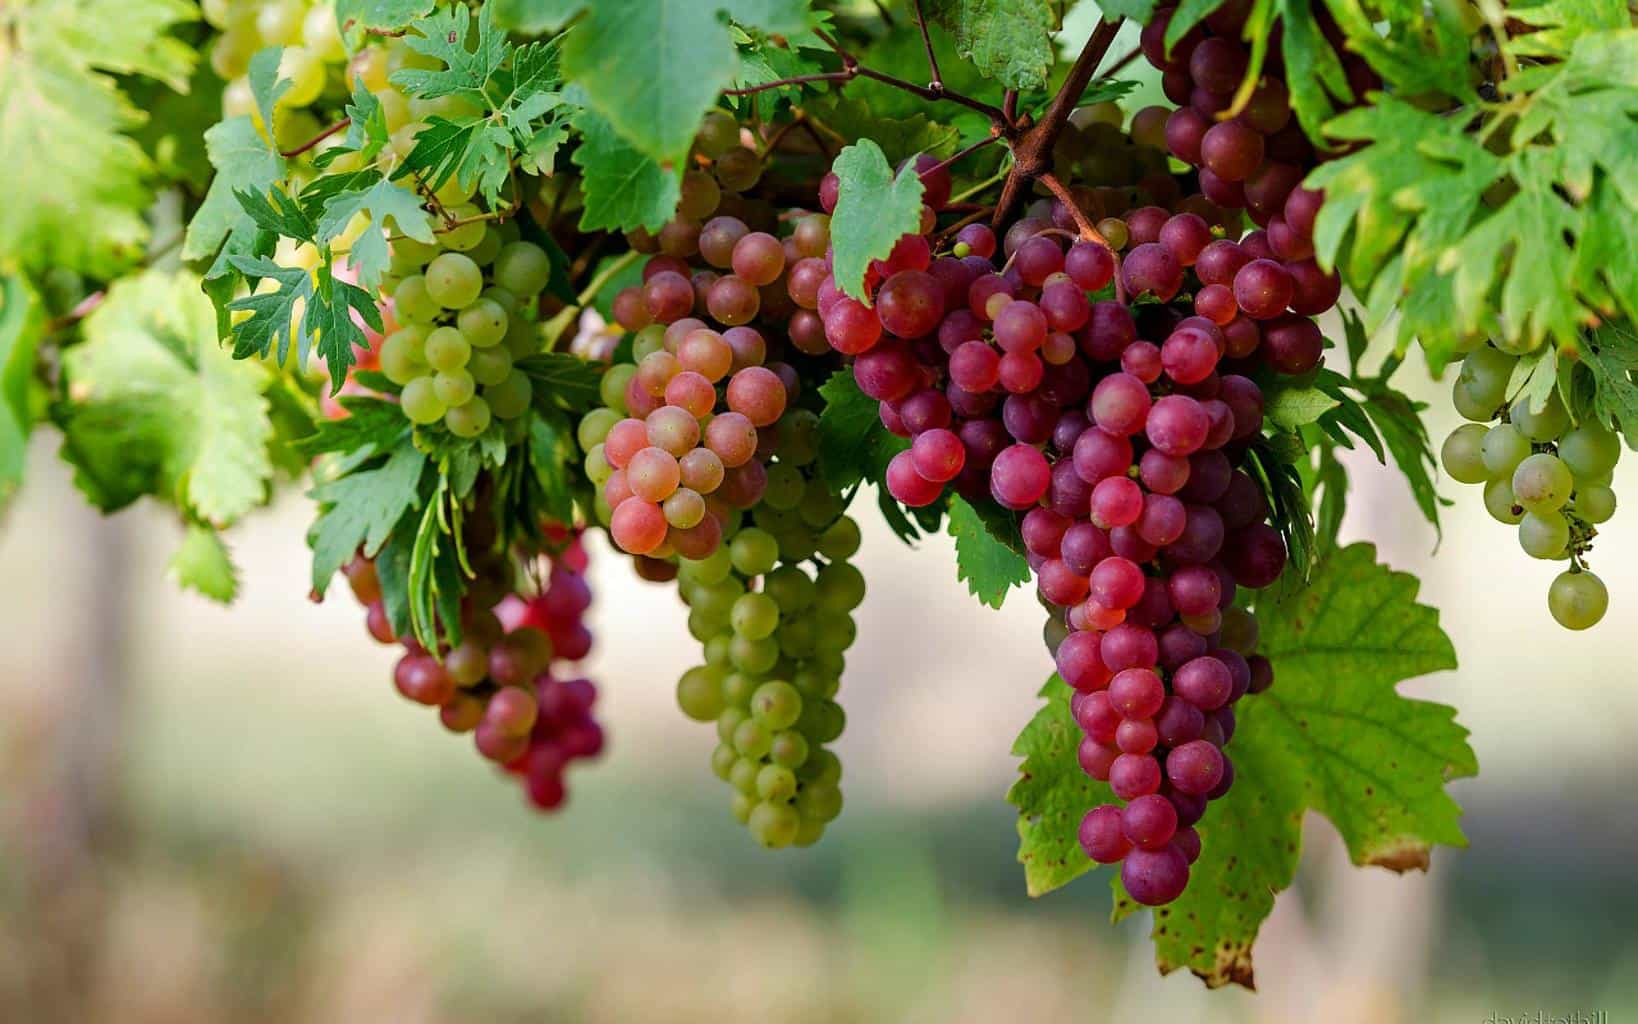 Grapes – a staple Biblical food